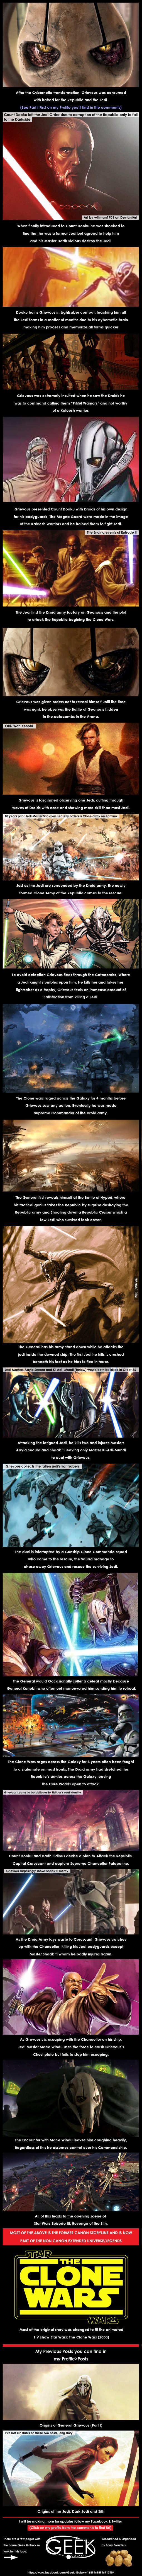 Origins of General Grievous (Part II) Star Wars History